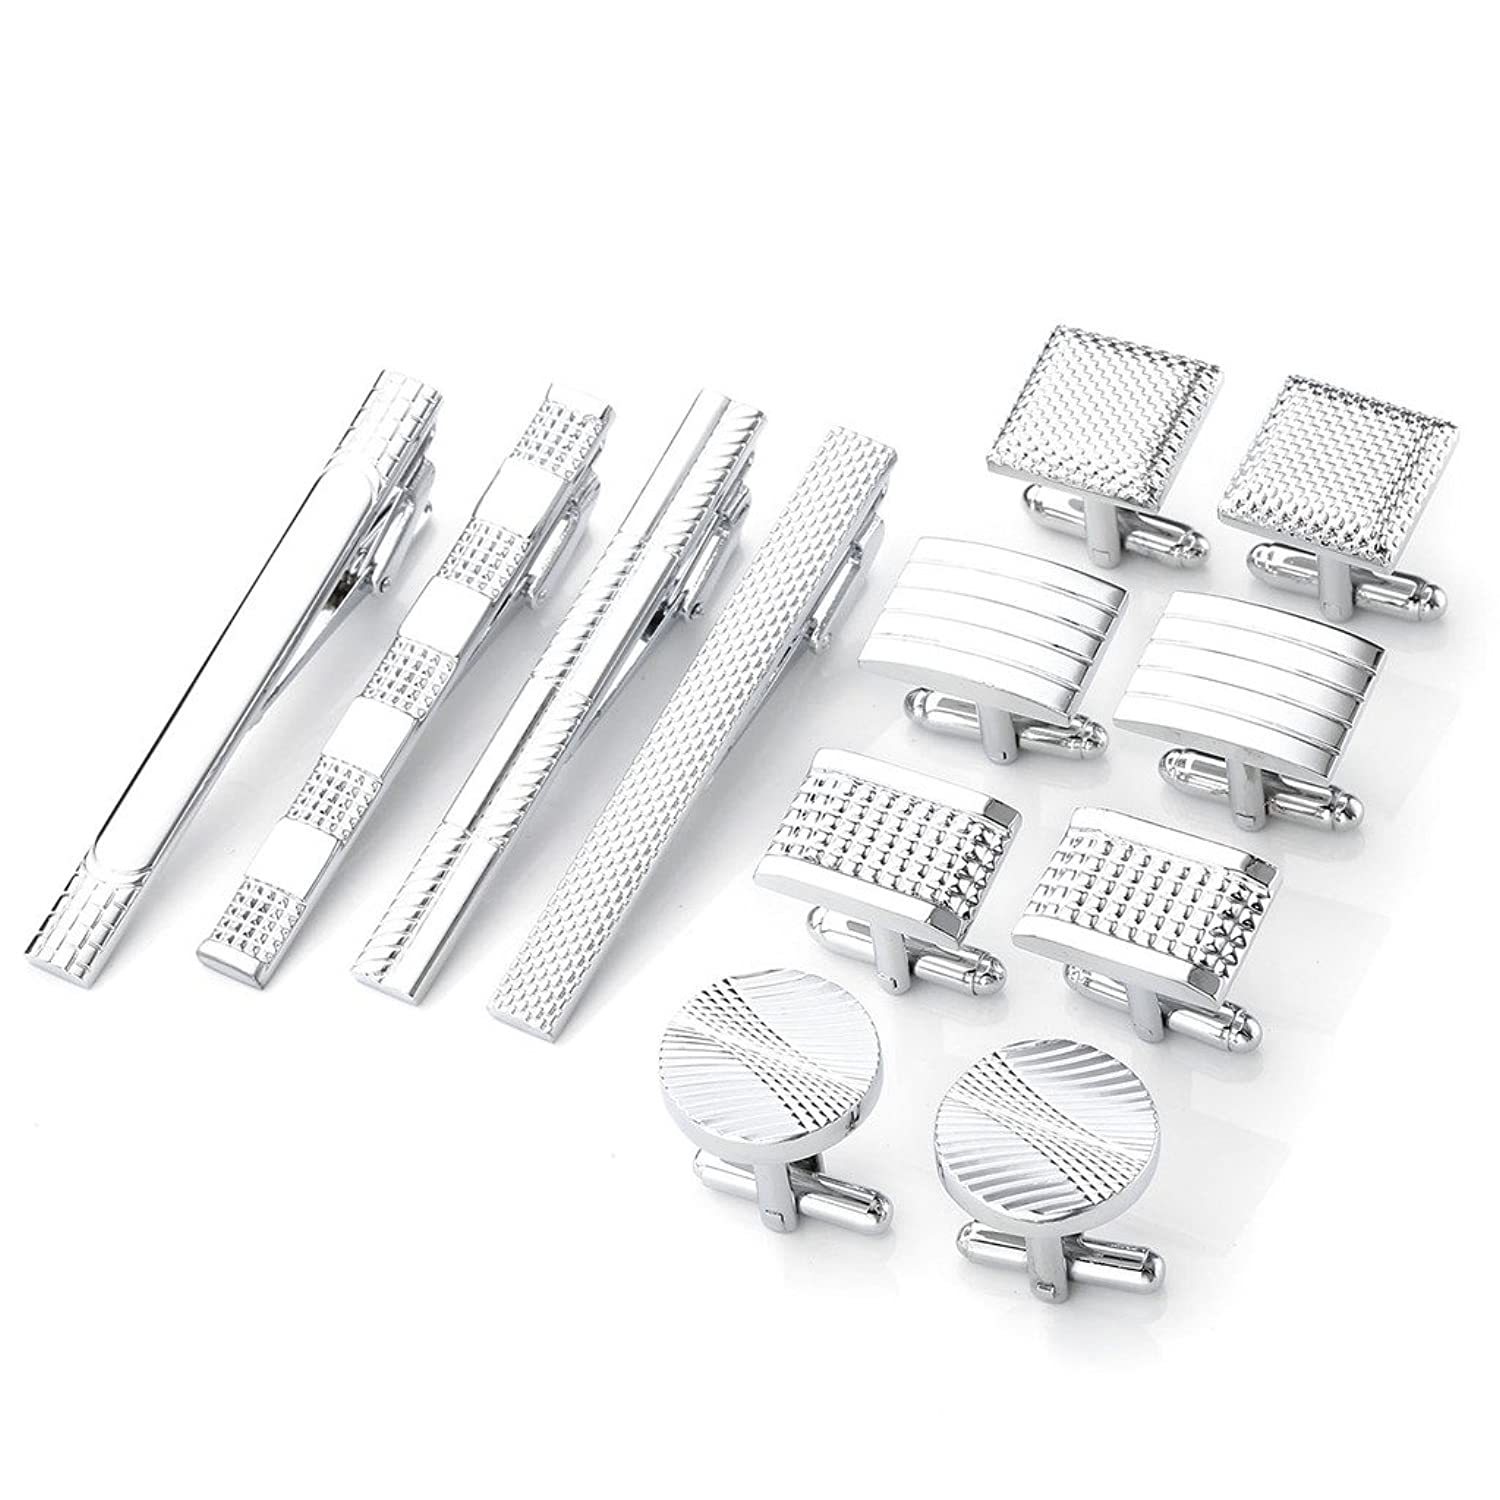 PiercingJ 12pcs Men's Classic Stainless Steel Cufflinks and Tie Clip Set